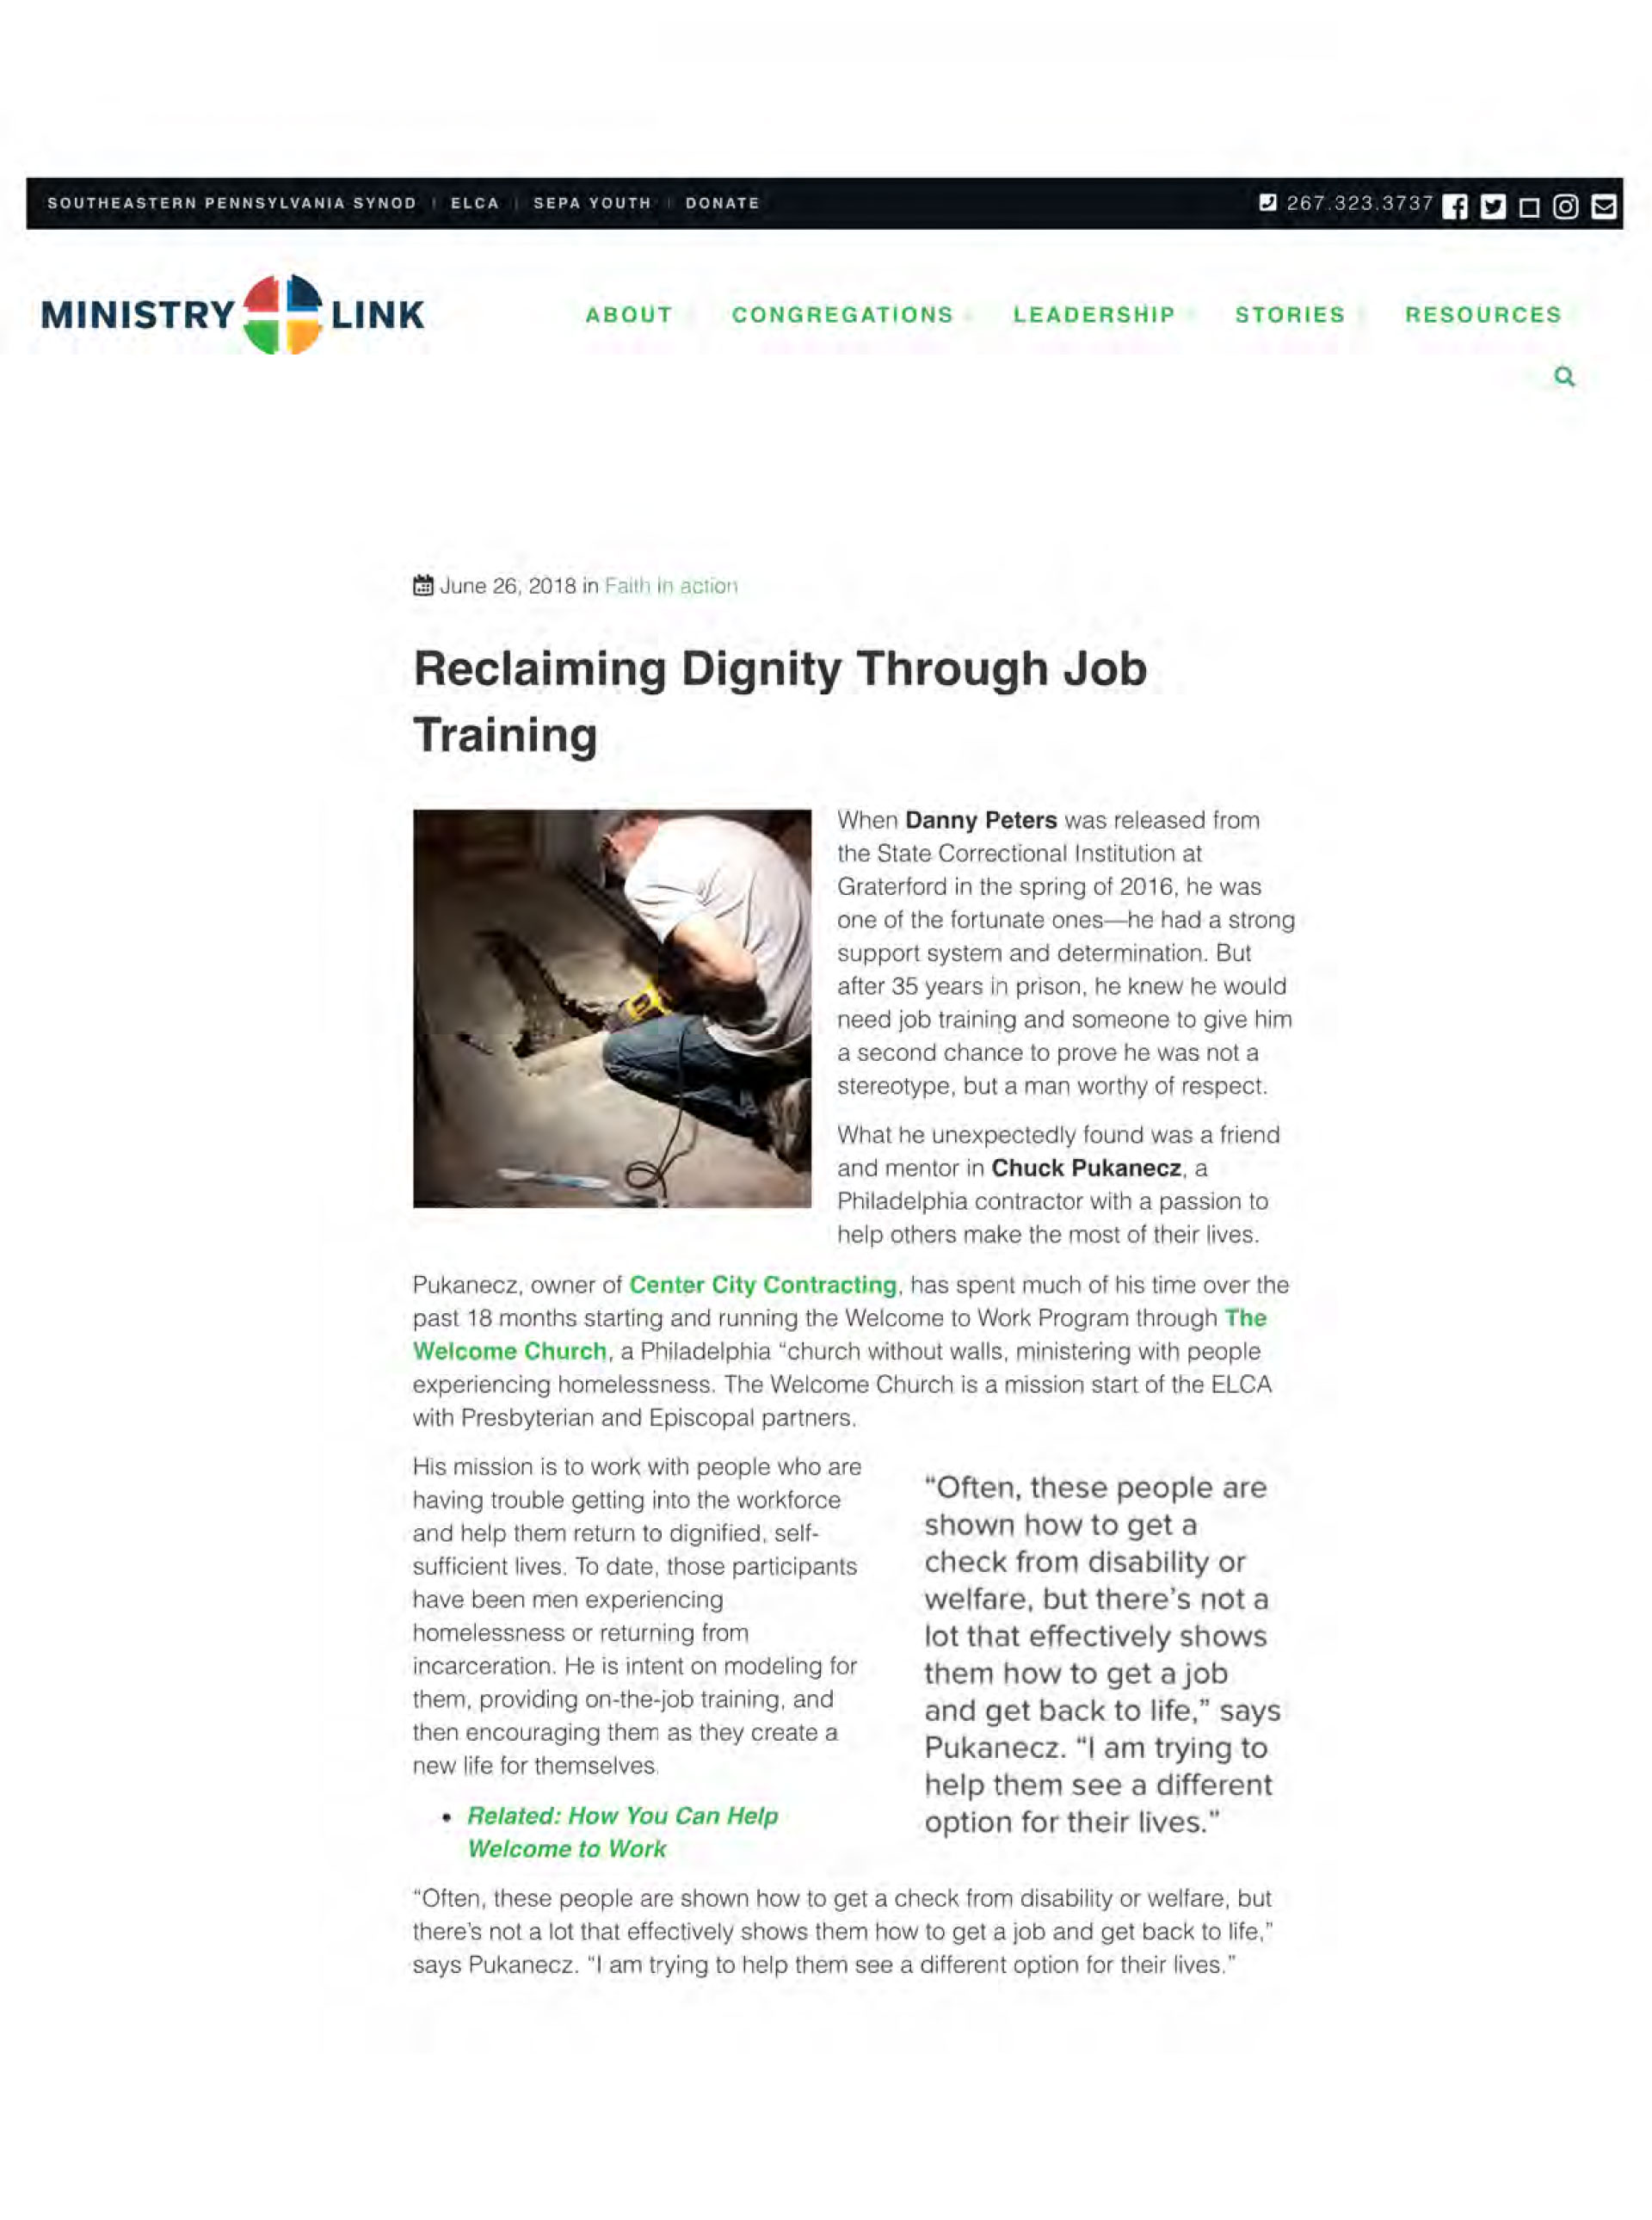 Reclaiming Dignity